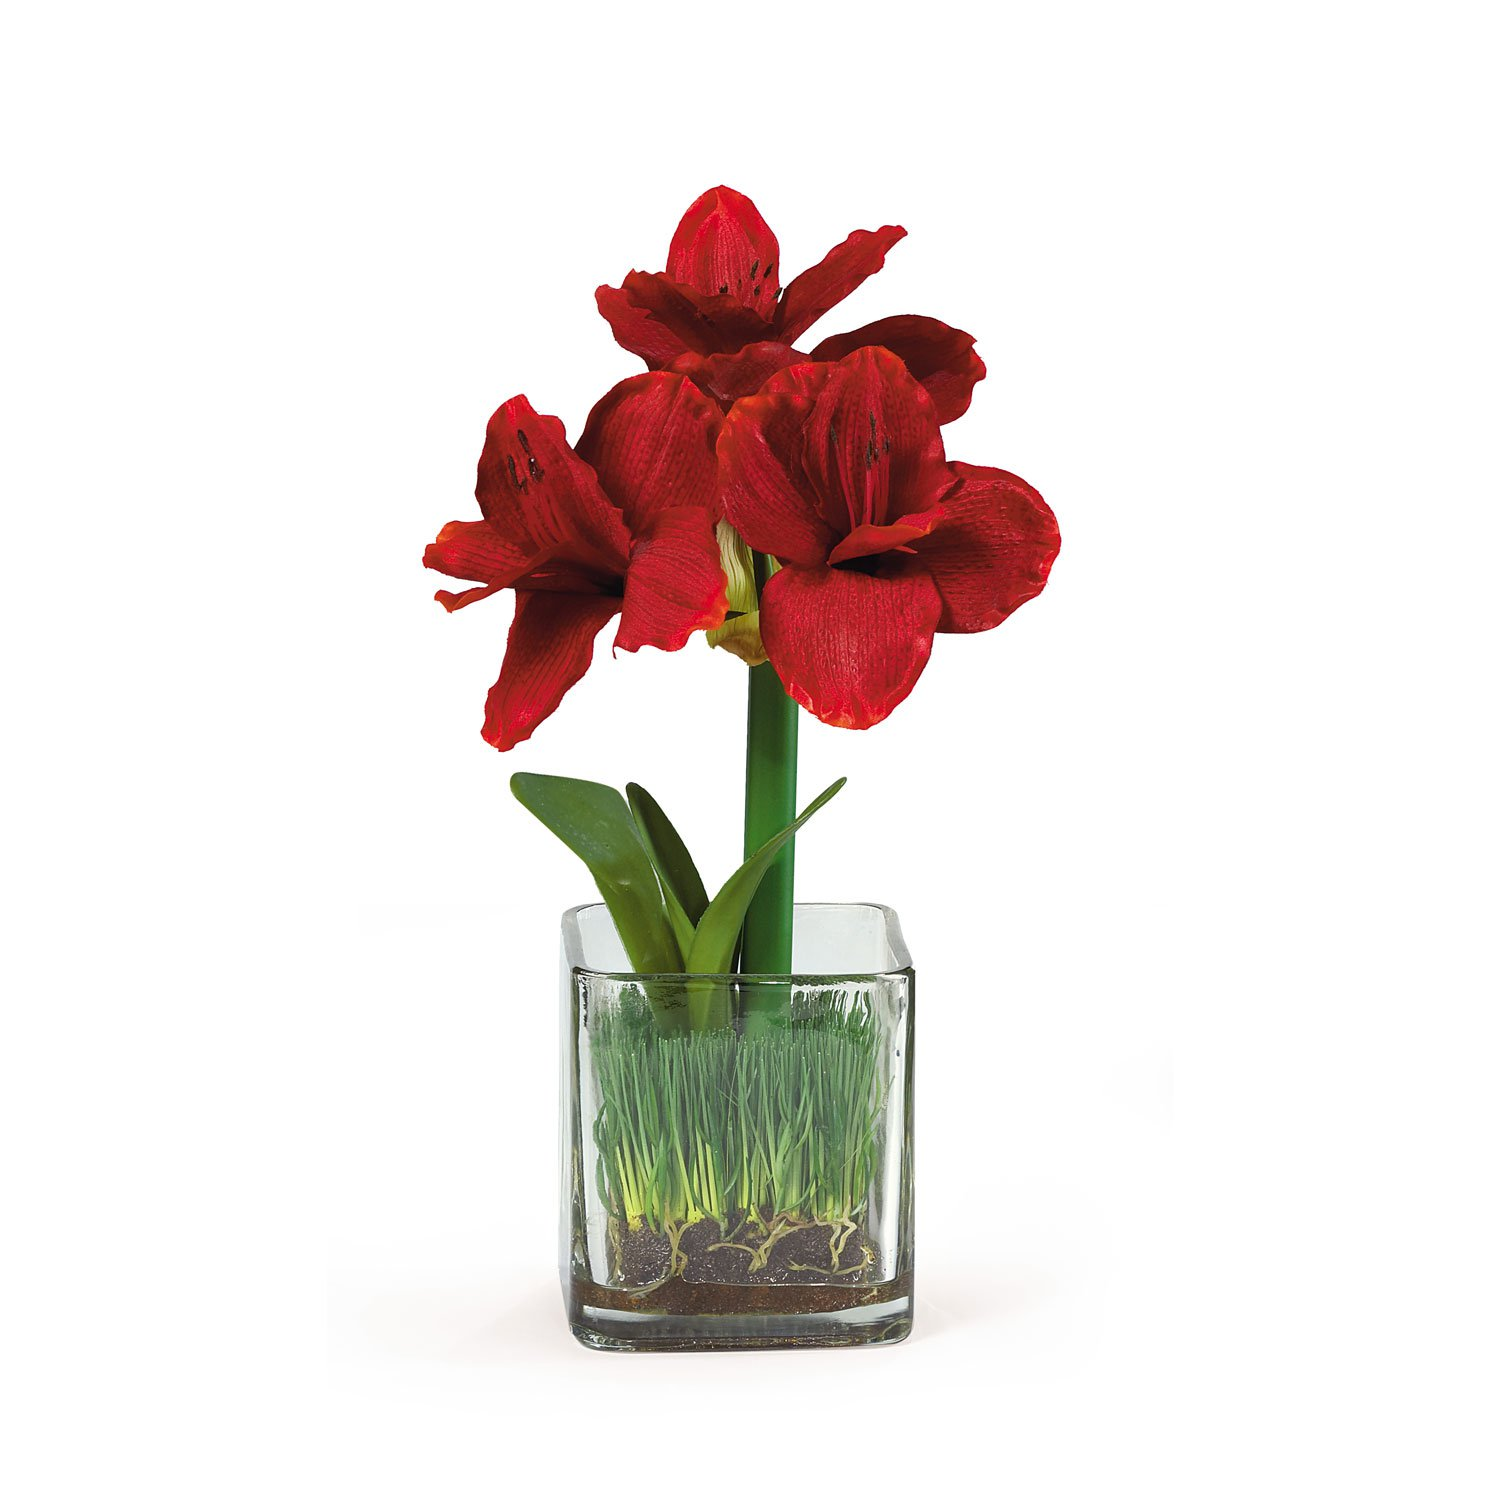 Amaryllis silk flower arrangement w glass vase - Flower arrangements for vases ...